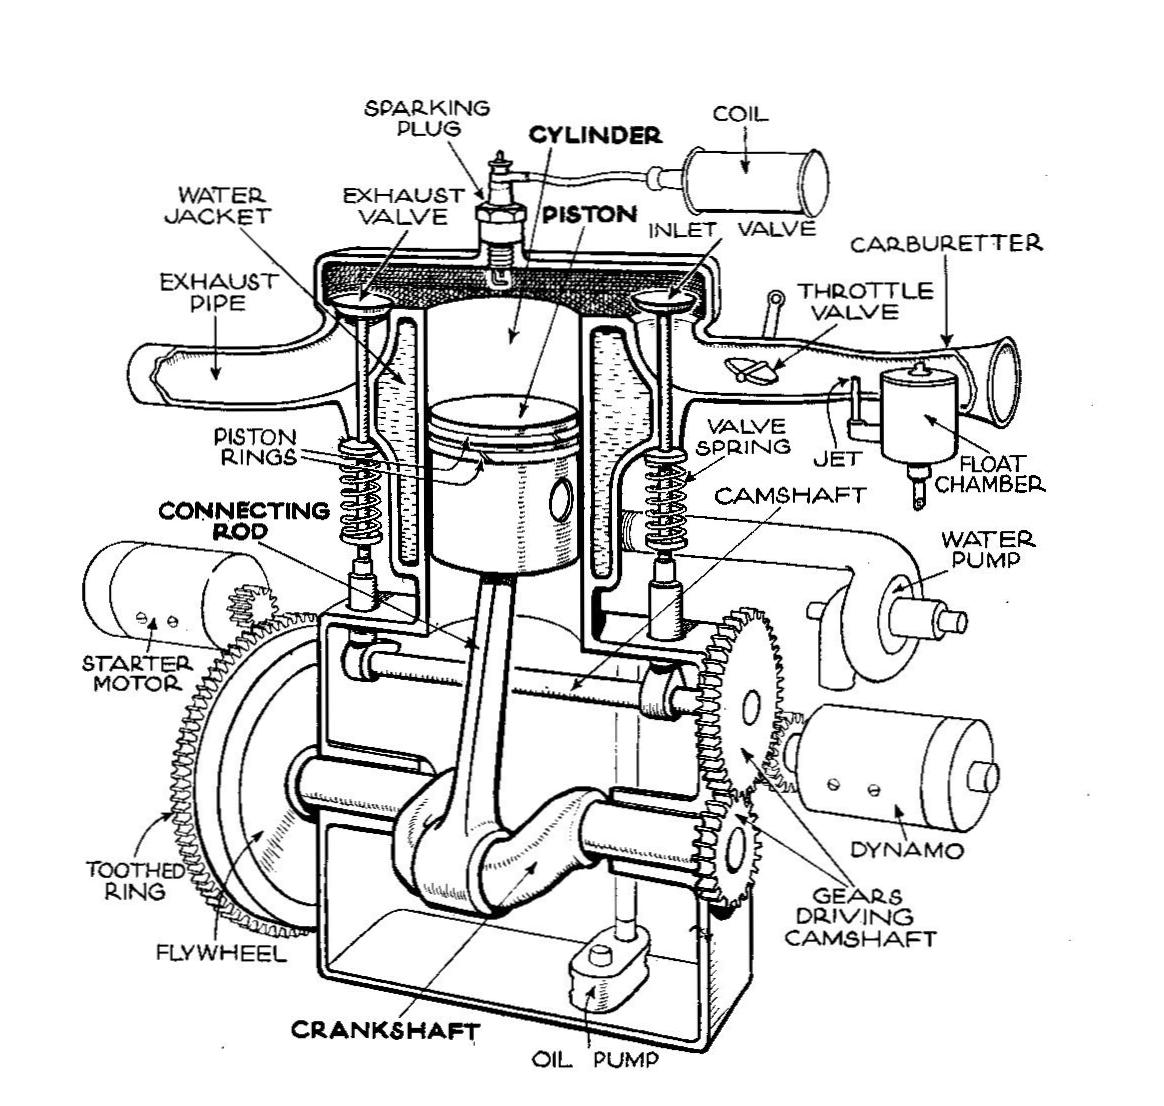 ford 460 starter rebuild diagram